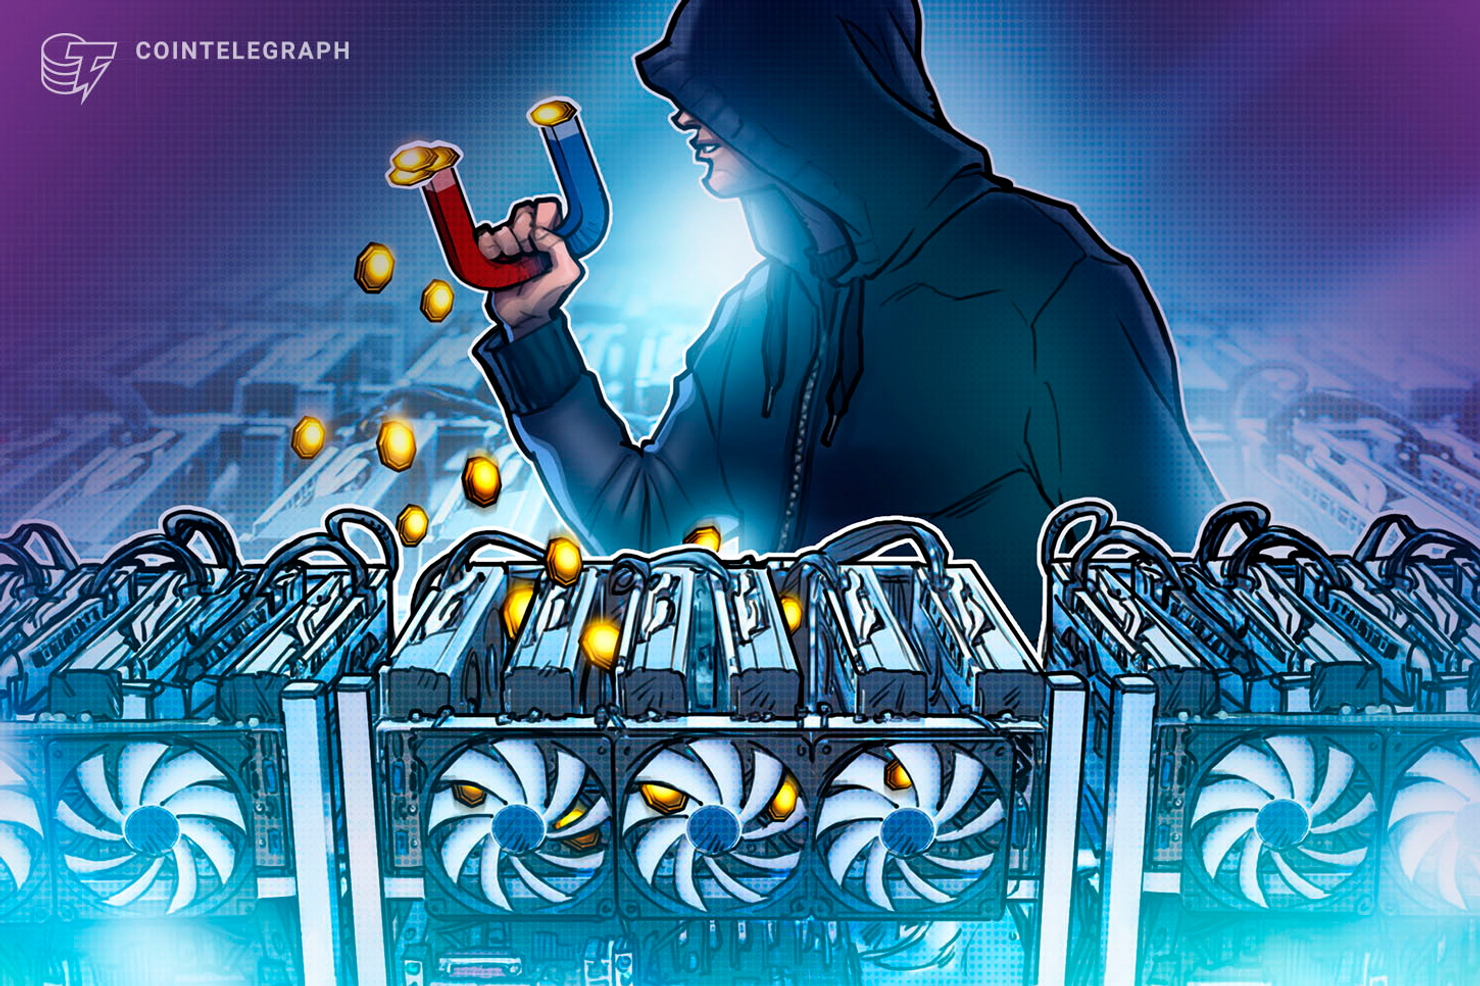 Sophisticated Trading Bot Exploits Synthetix Oracle, Funds Recovered